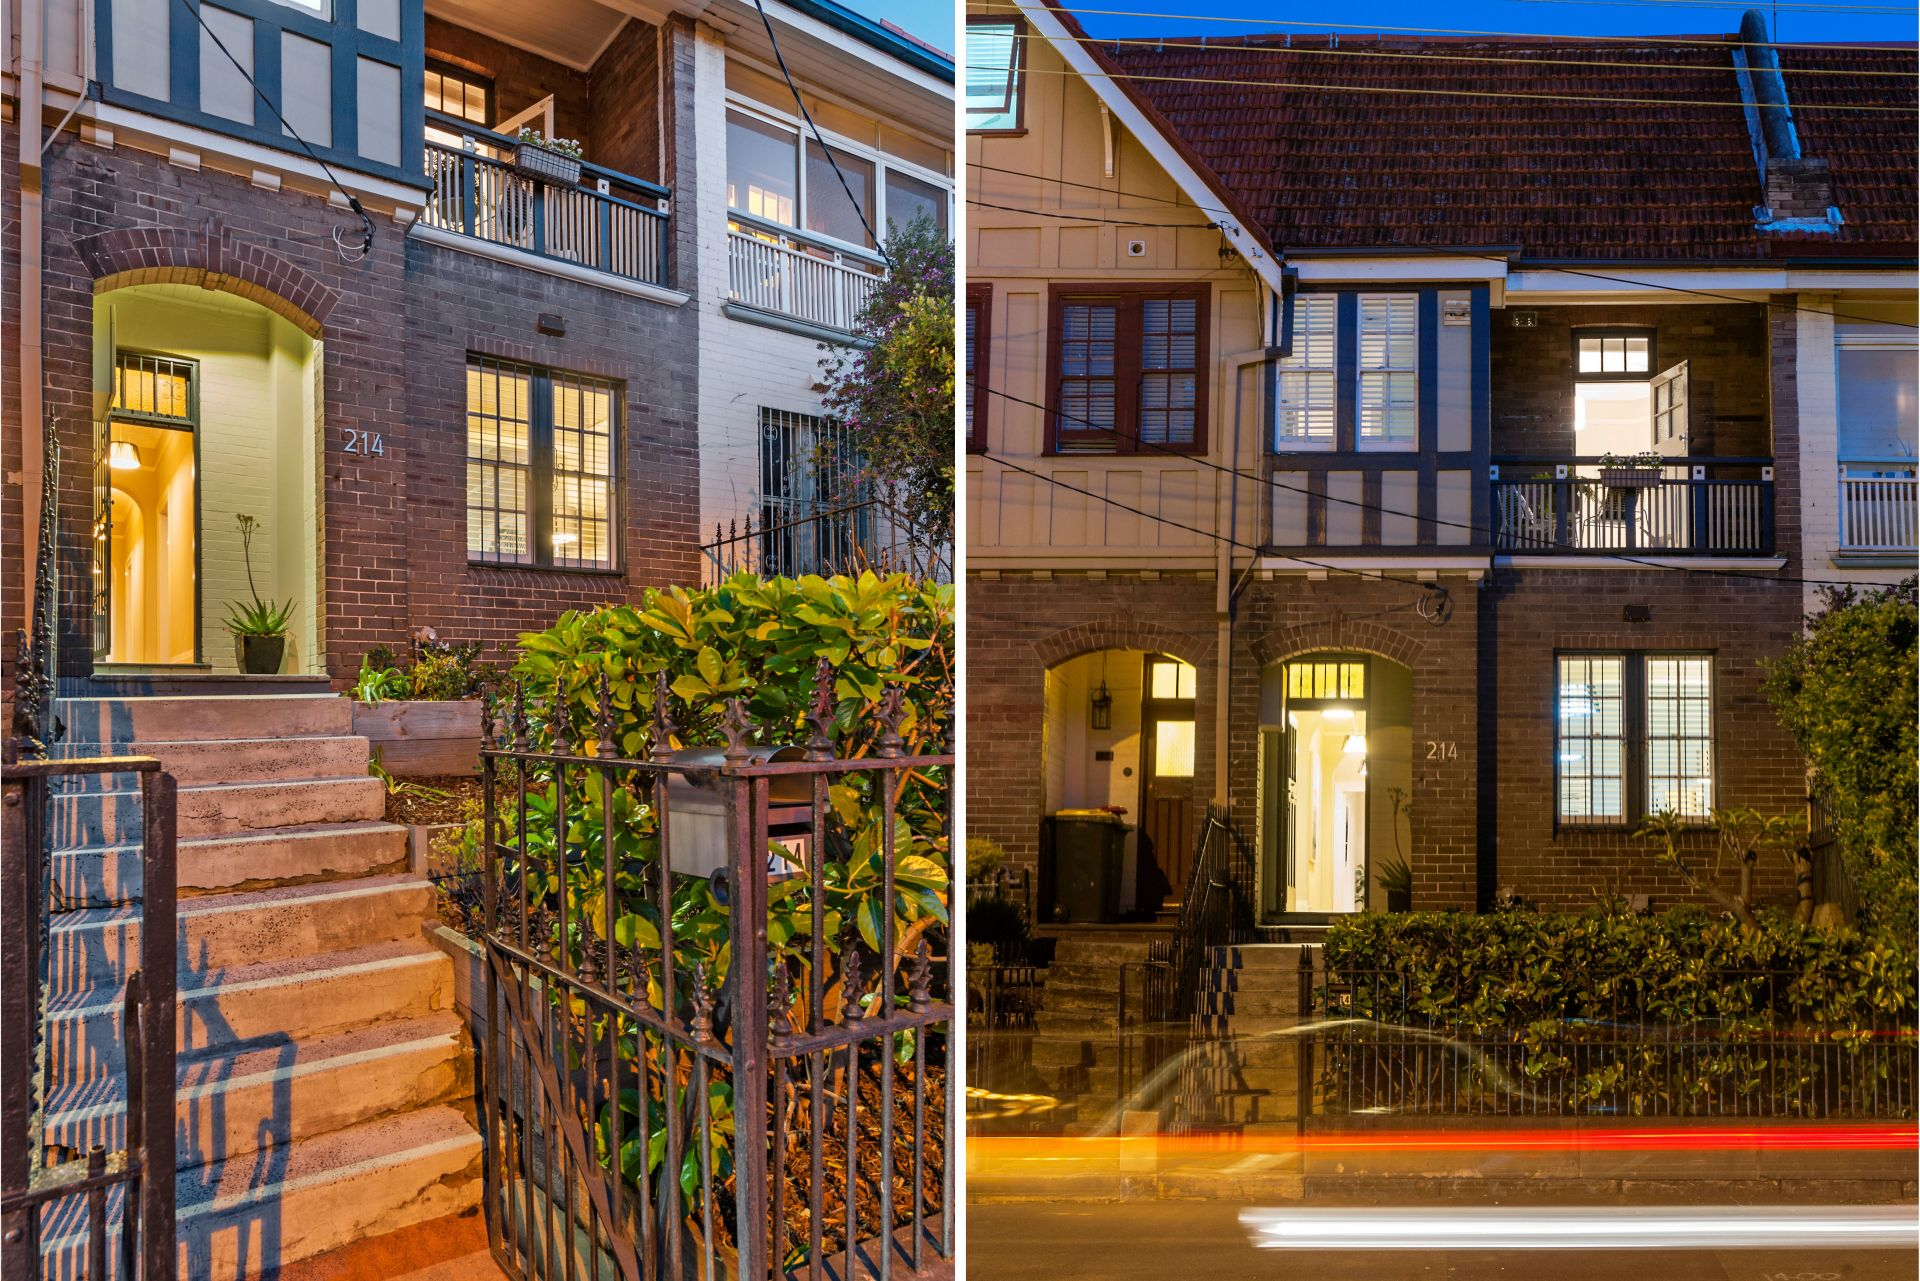 214 Bridge Road, Glebe